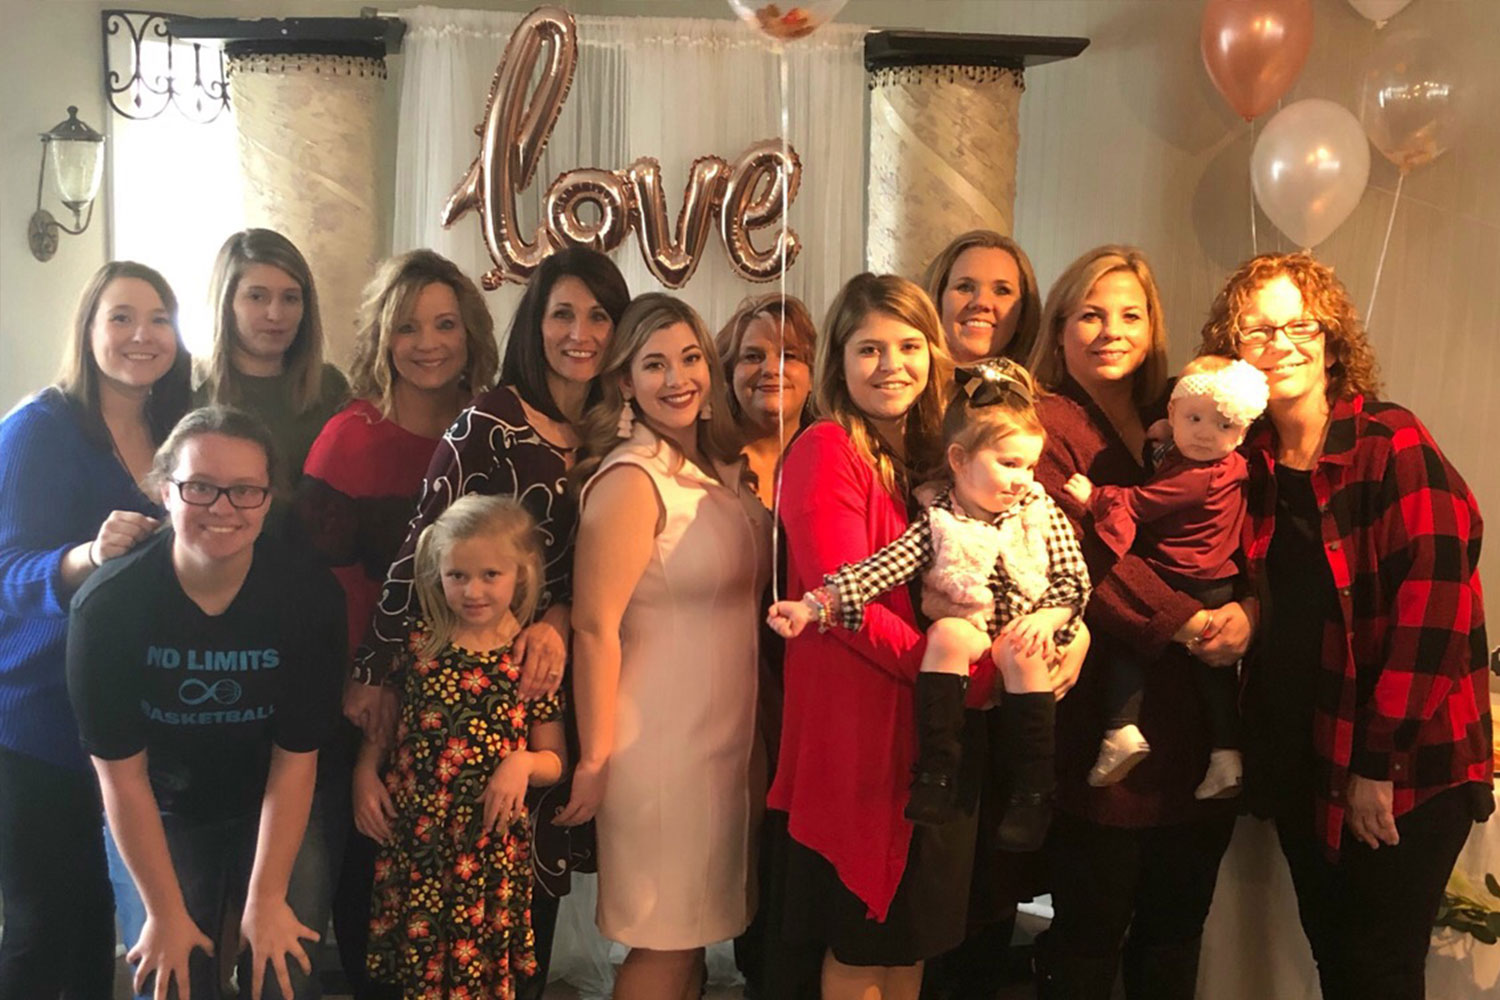 Four generations of family! My mom, all 4 sisters, our daughters and their daughters! It just makes my heart so happy to see us all in that picture.